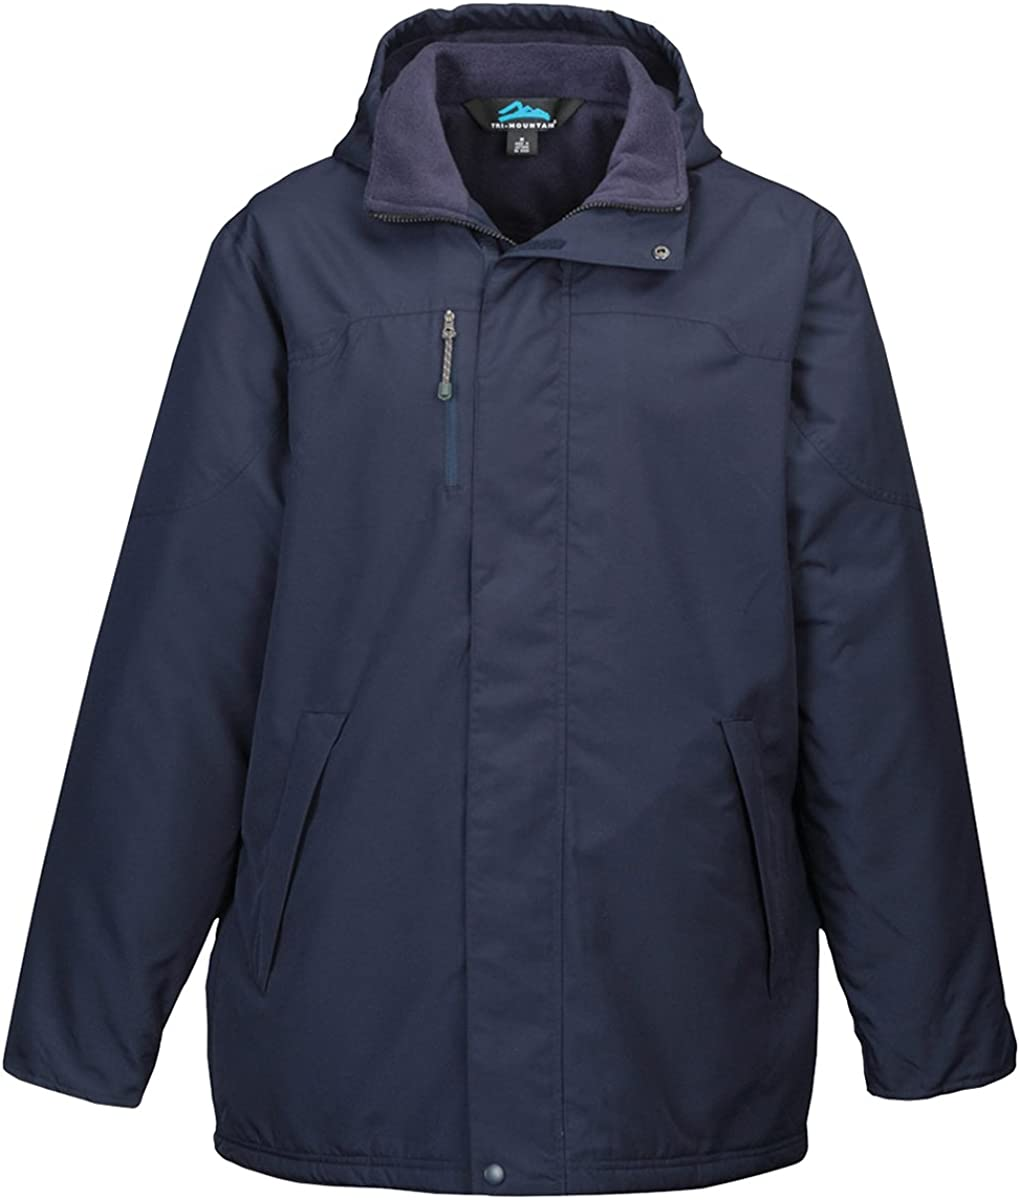 Tri-Mountain 9980 Mens 100% Polyester Long Sleeve jacket With Water Resistent - Navy/Navy - M